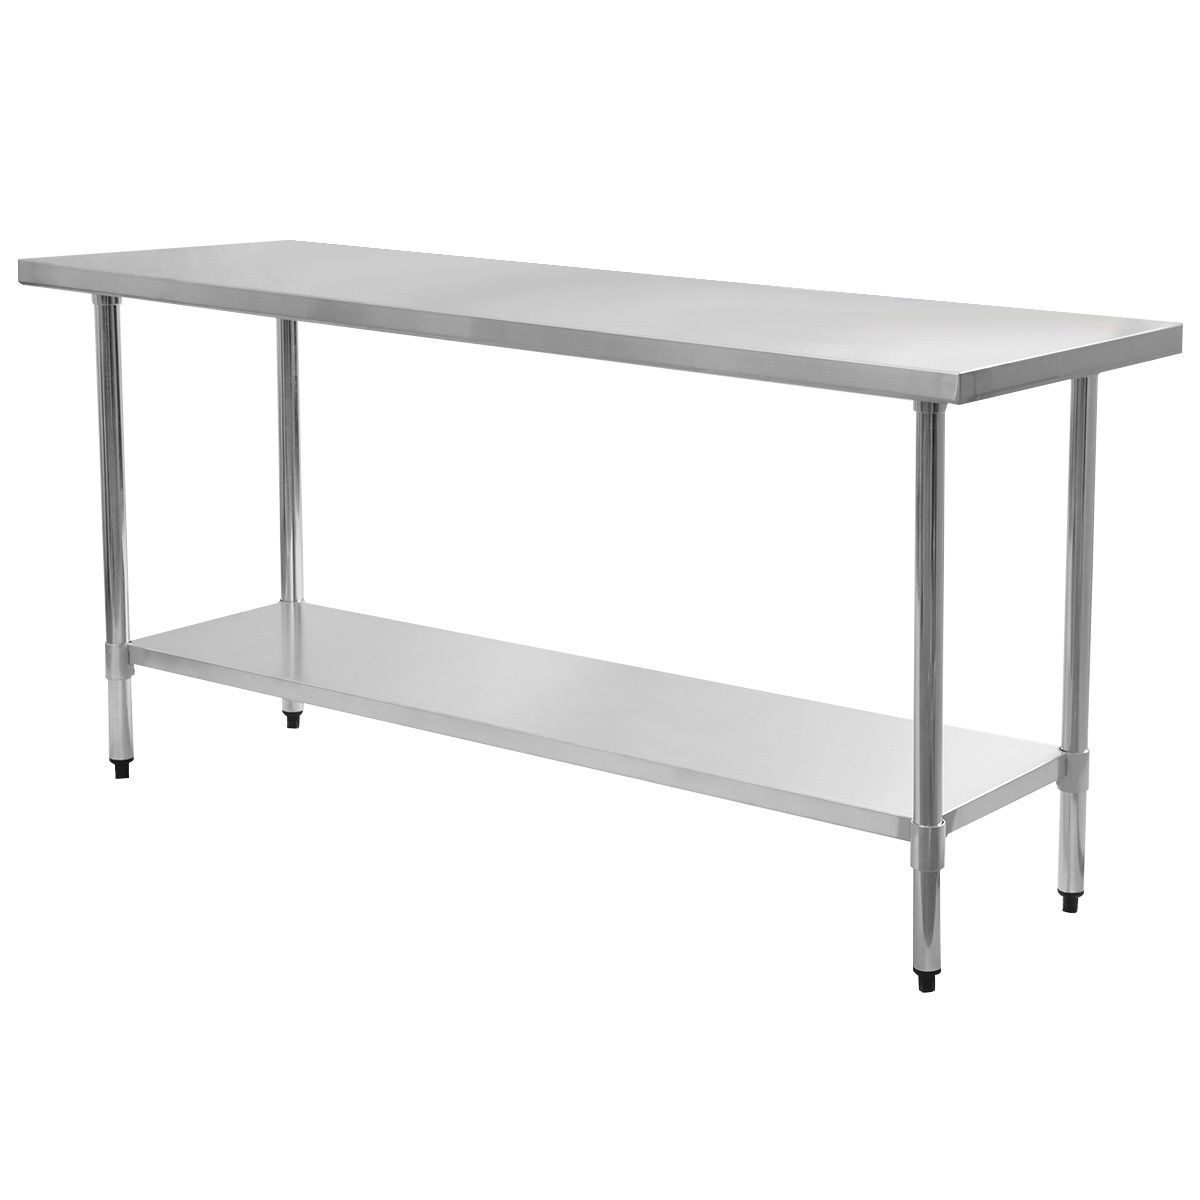 24 X 72 Stainless Steel Work Prep Table Commercial Kitchen Restaurant With Images Stainless Steel Kitchen Table Modern Kitchen Tables Stainless Steel Work Table